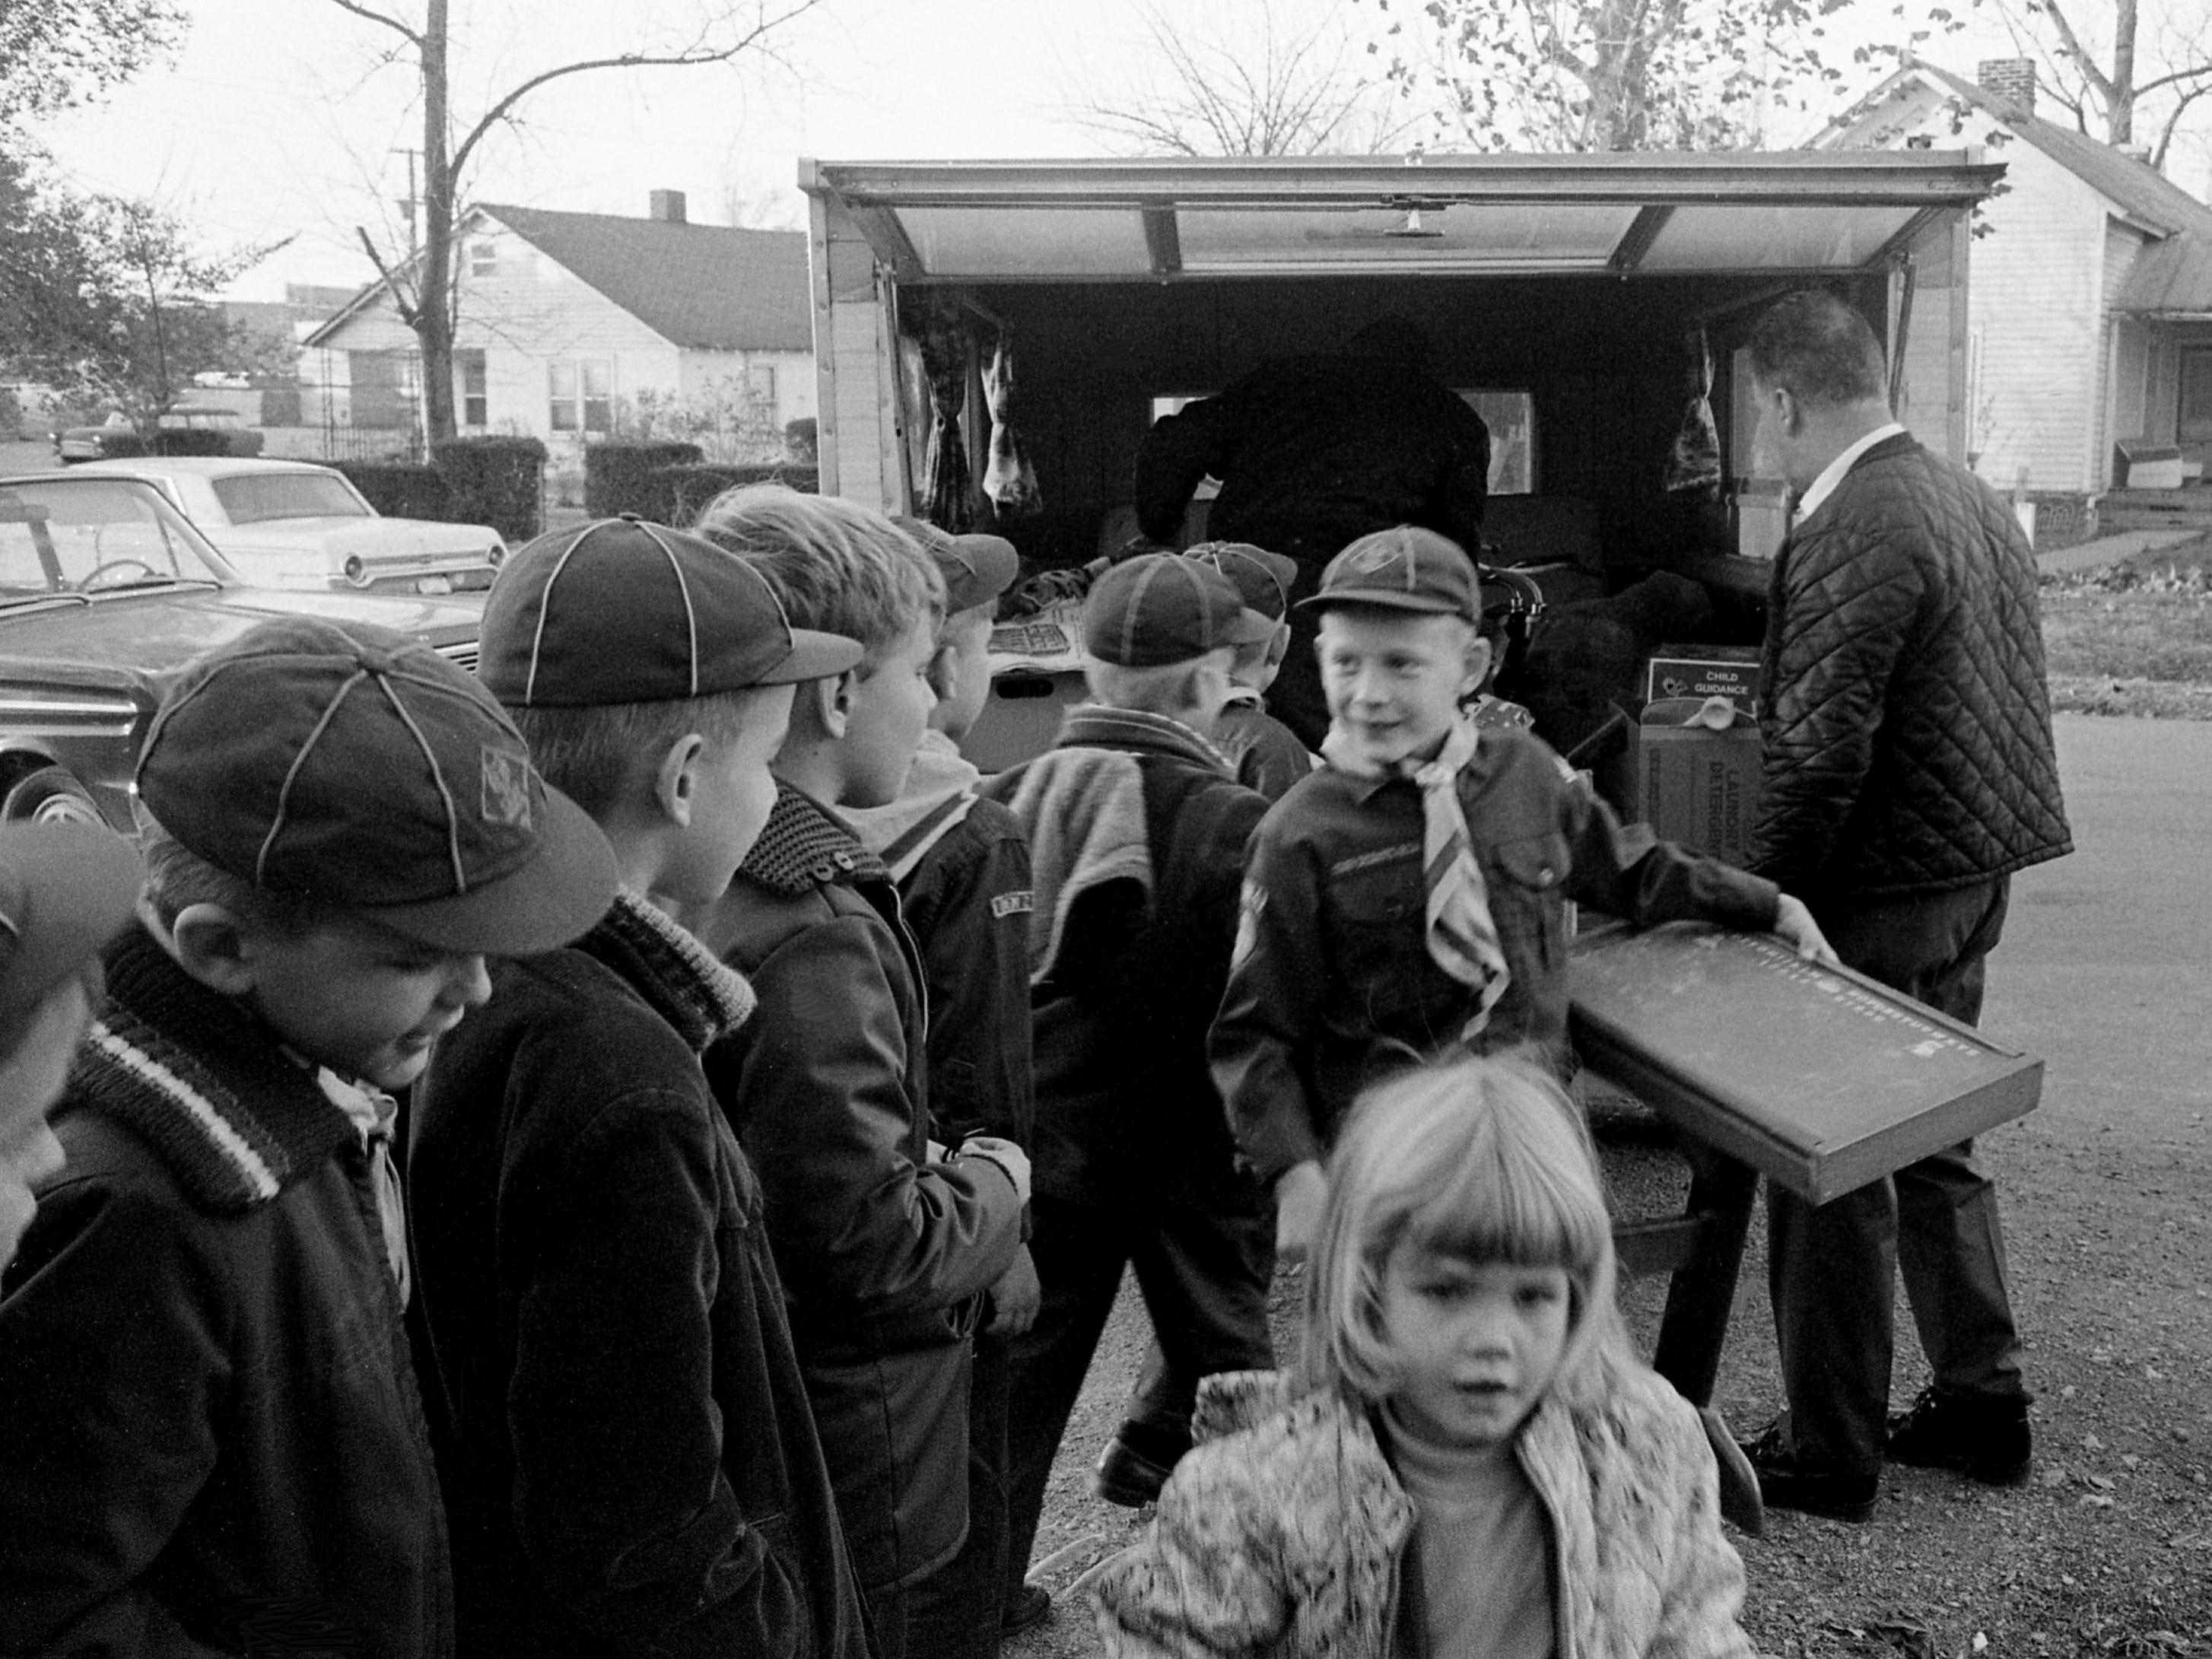 Cub Scouts from White's Creek Pack 292 unload toys at St. Luke's Community Center on New York Ave. Nov. 21, 1968 after collecting them in the community. St. Luke's will distribute the toys to underprivileged children during the Christmas holidays.